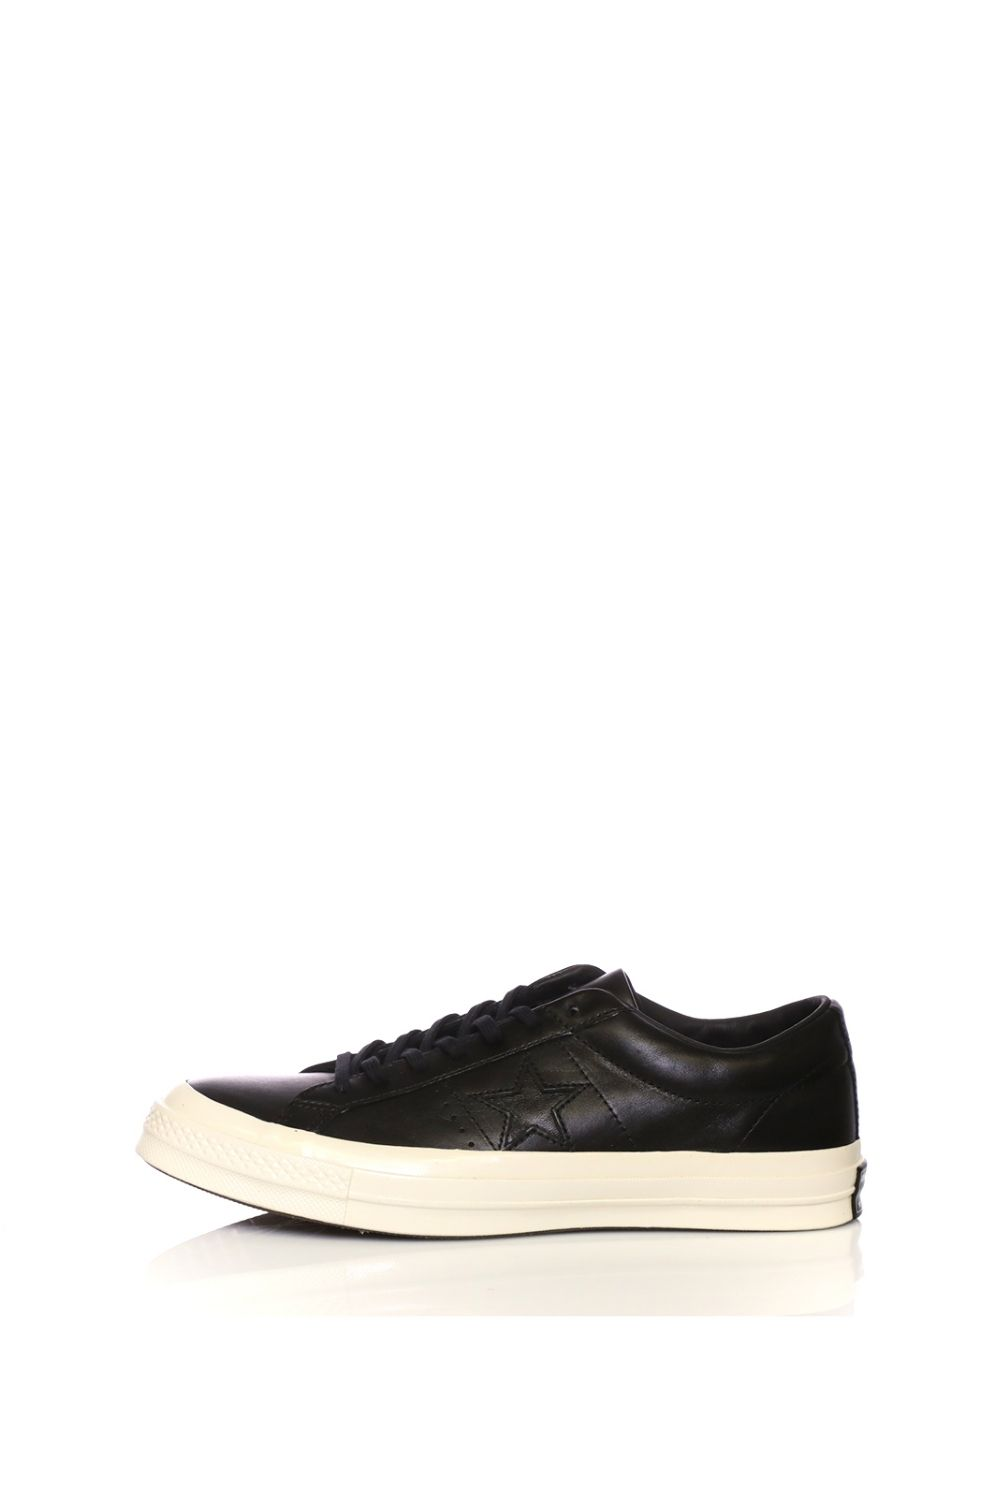 CONVERSE – Unisex sneakers CONVERSE One Star Ox μαύρα